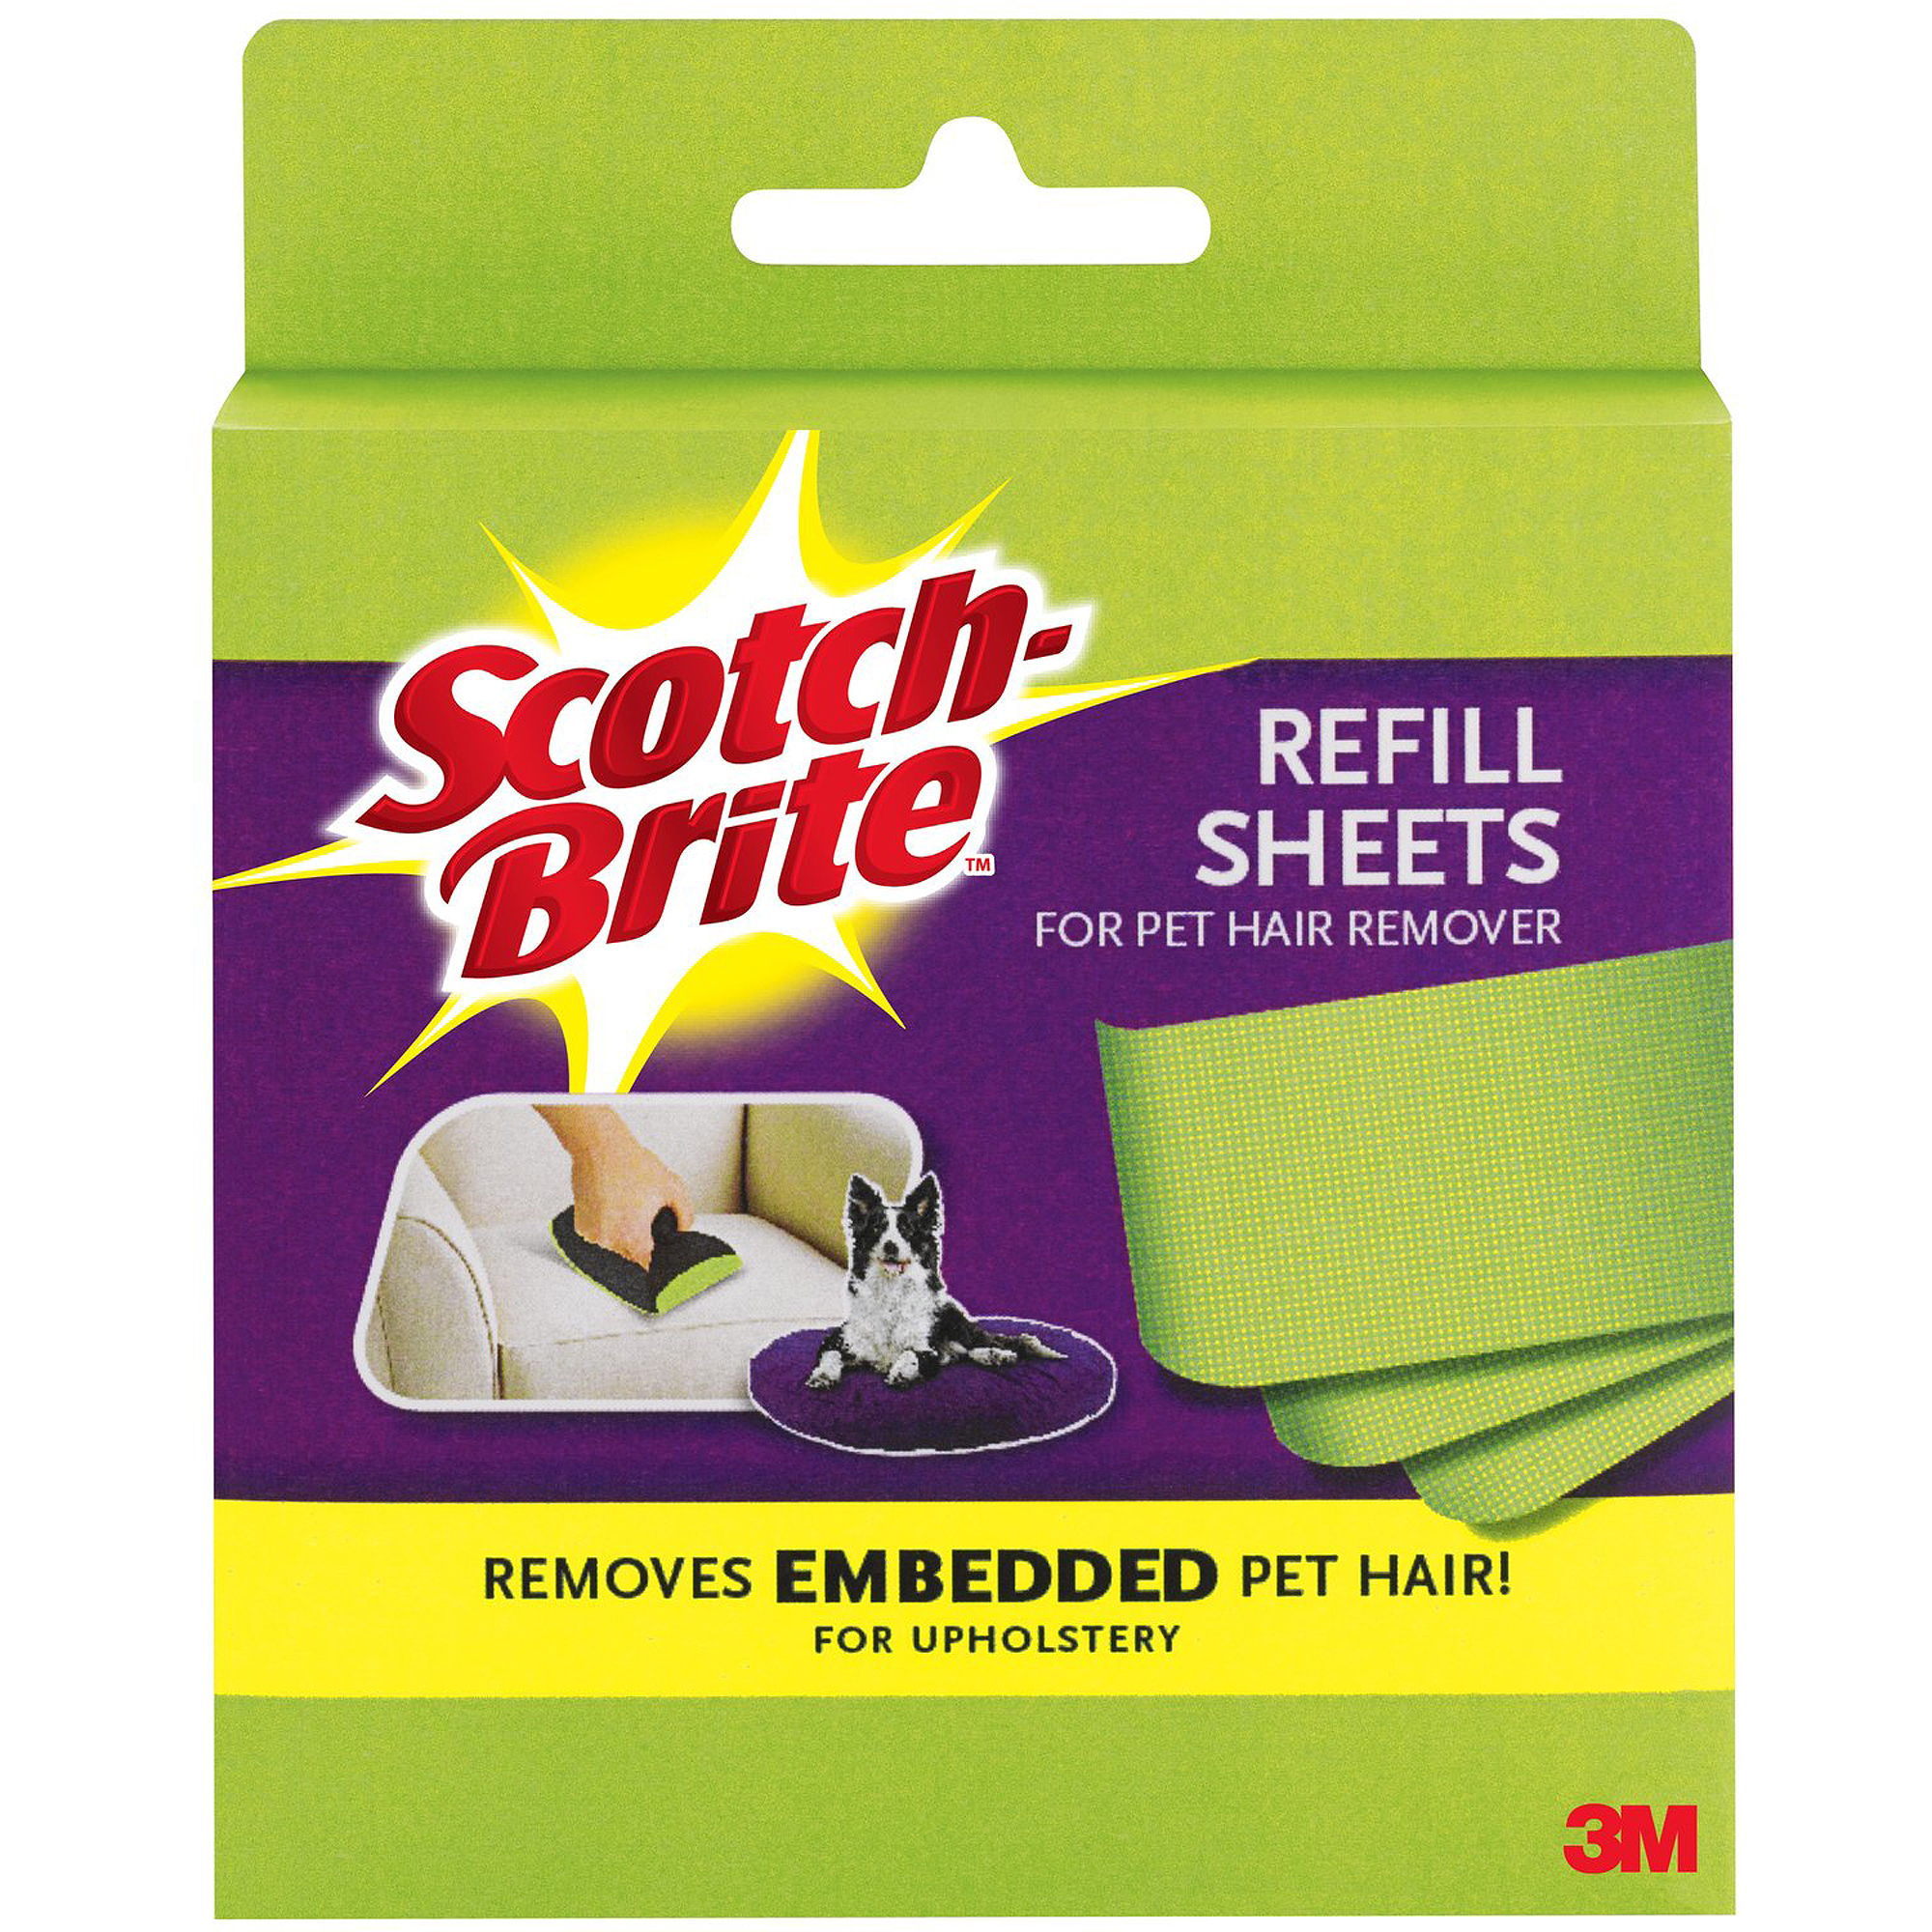 Scotch Fur Fighter Hair Remover Refill Sheets, 8 Refill Sheets